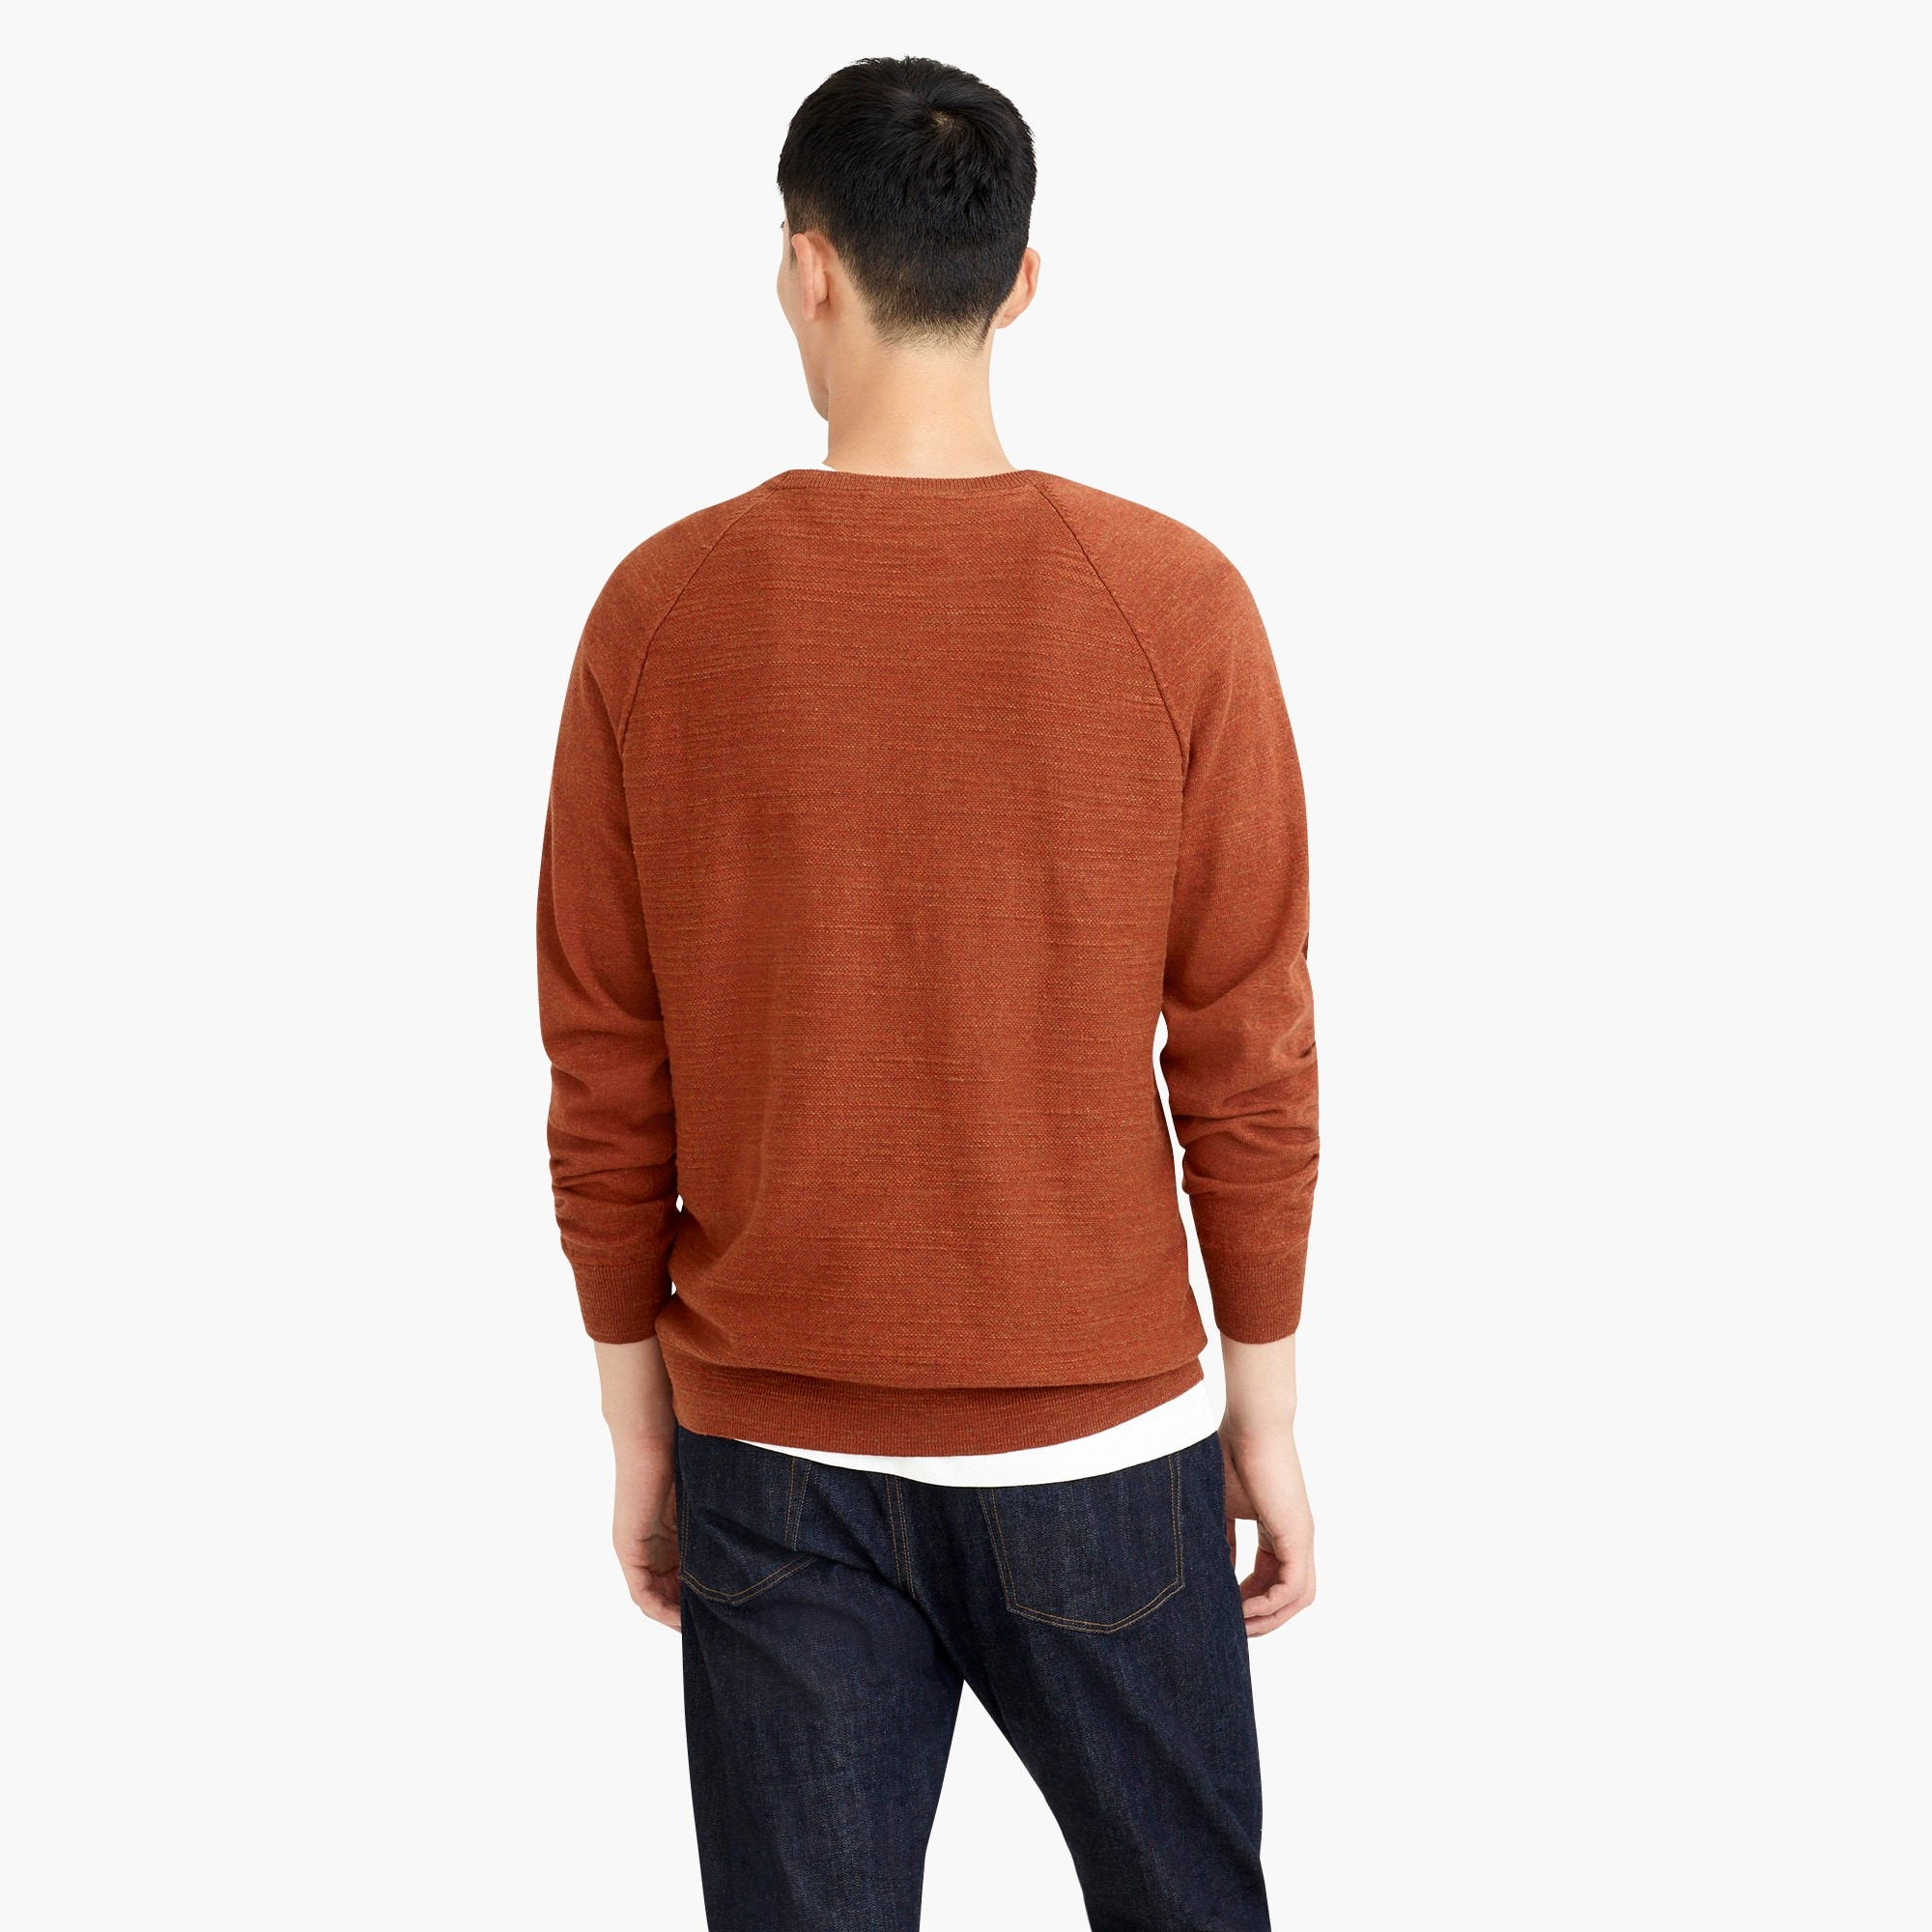 Image 4 for Rugged cotton sweater